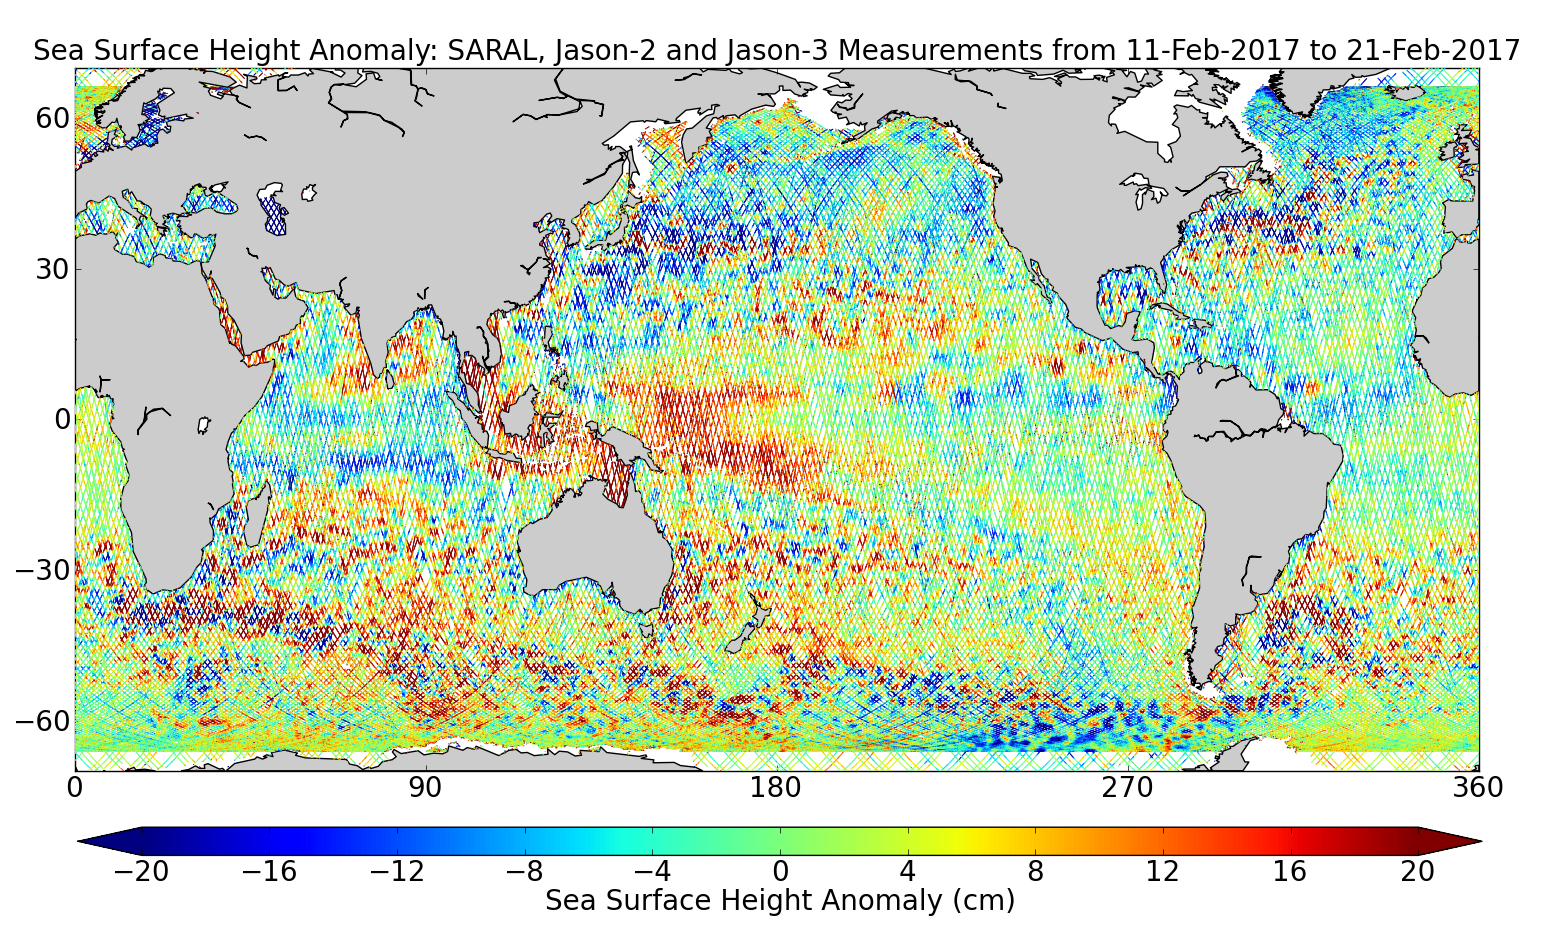 Sea Surface Height Anomaly: SARAL, Jason-2 and Jason-3 Measurements from 11-Feb-2017 to 21-Feb-2017